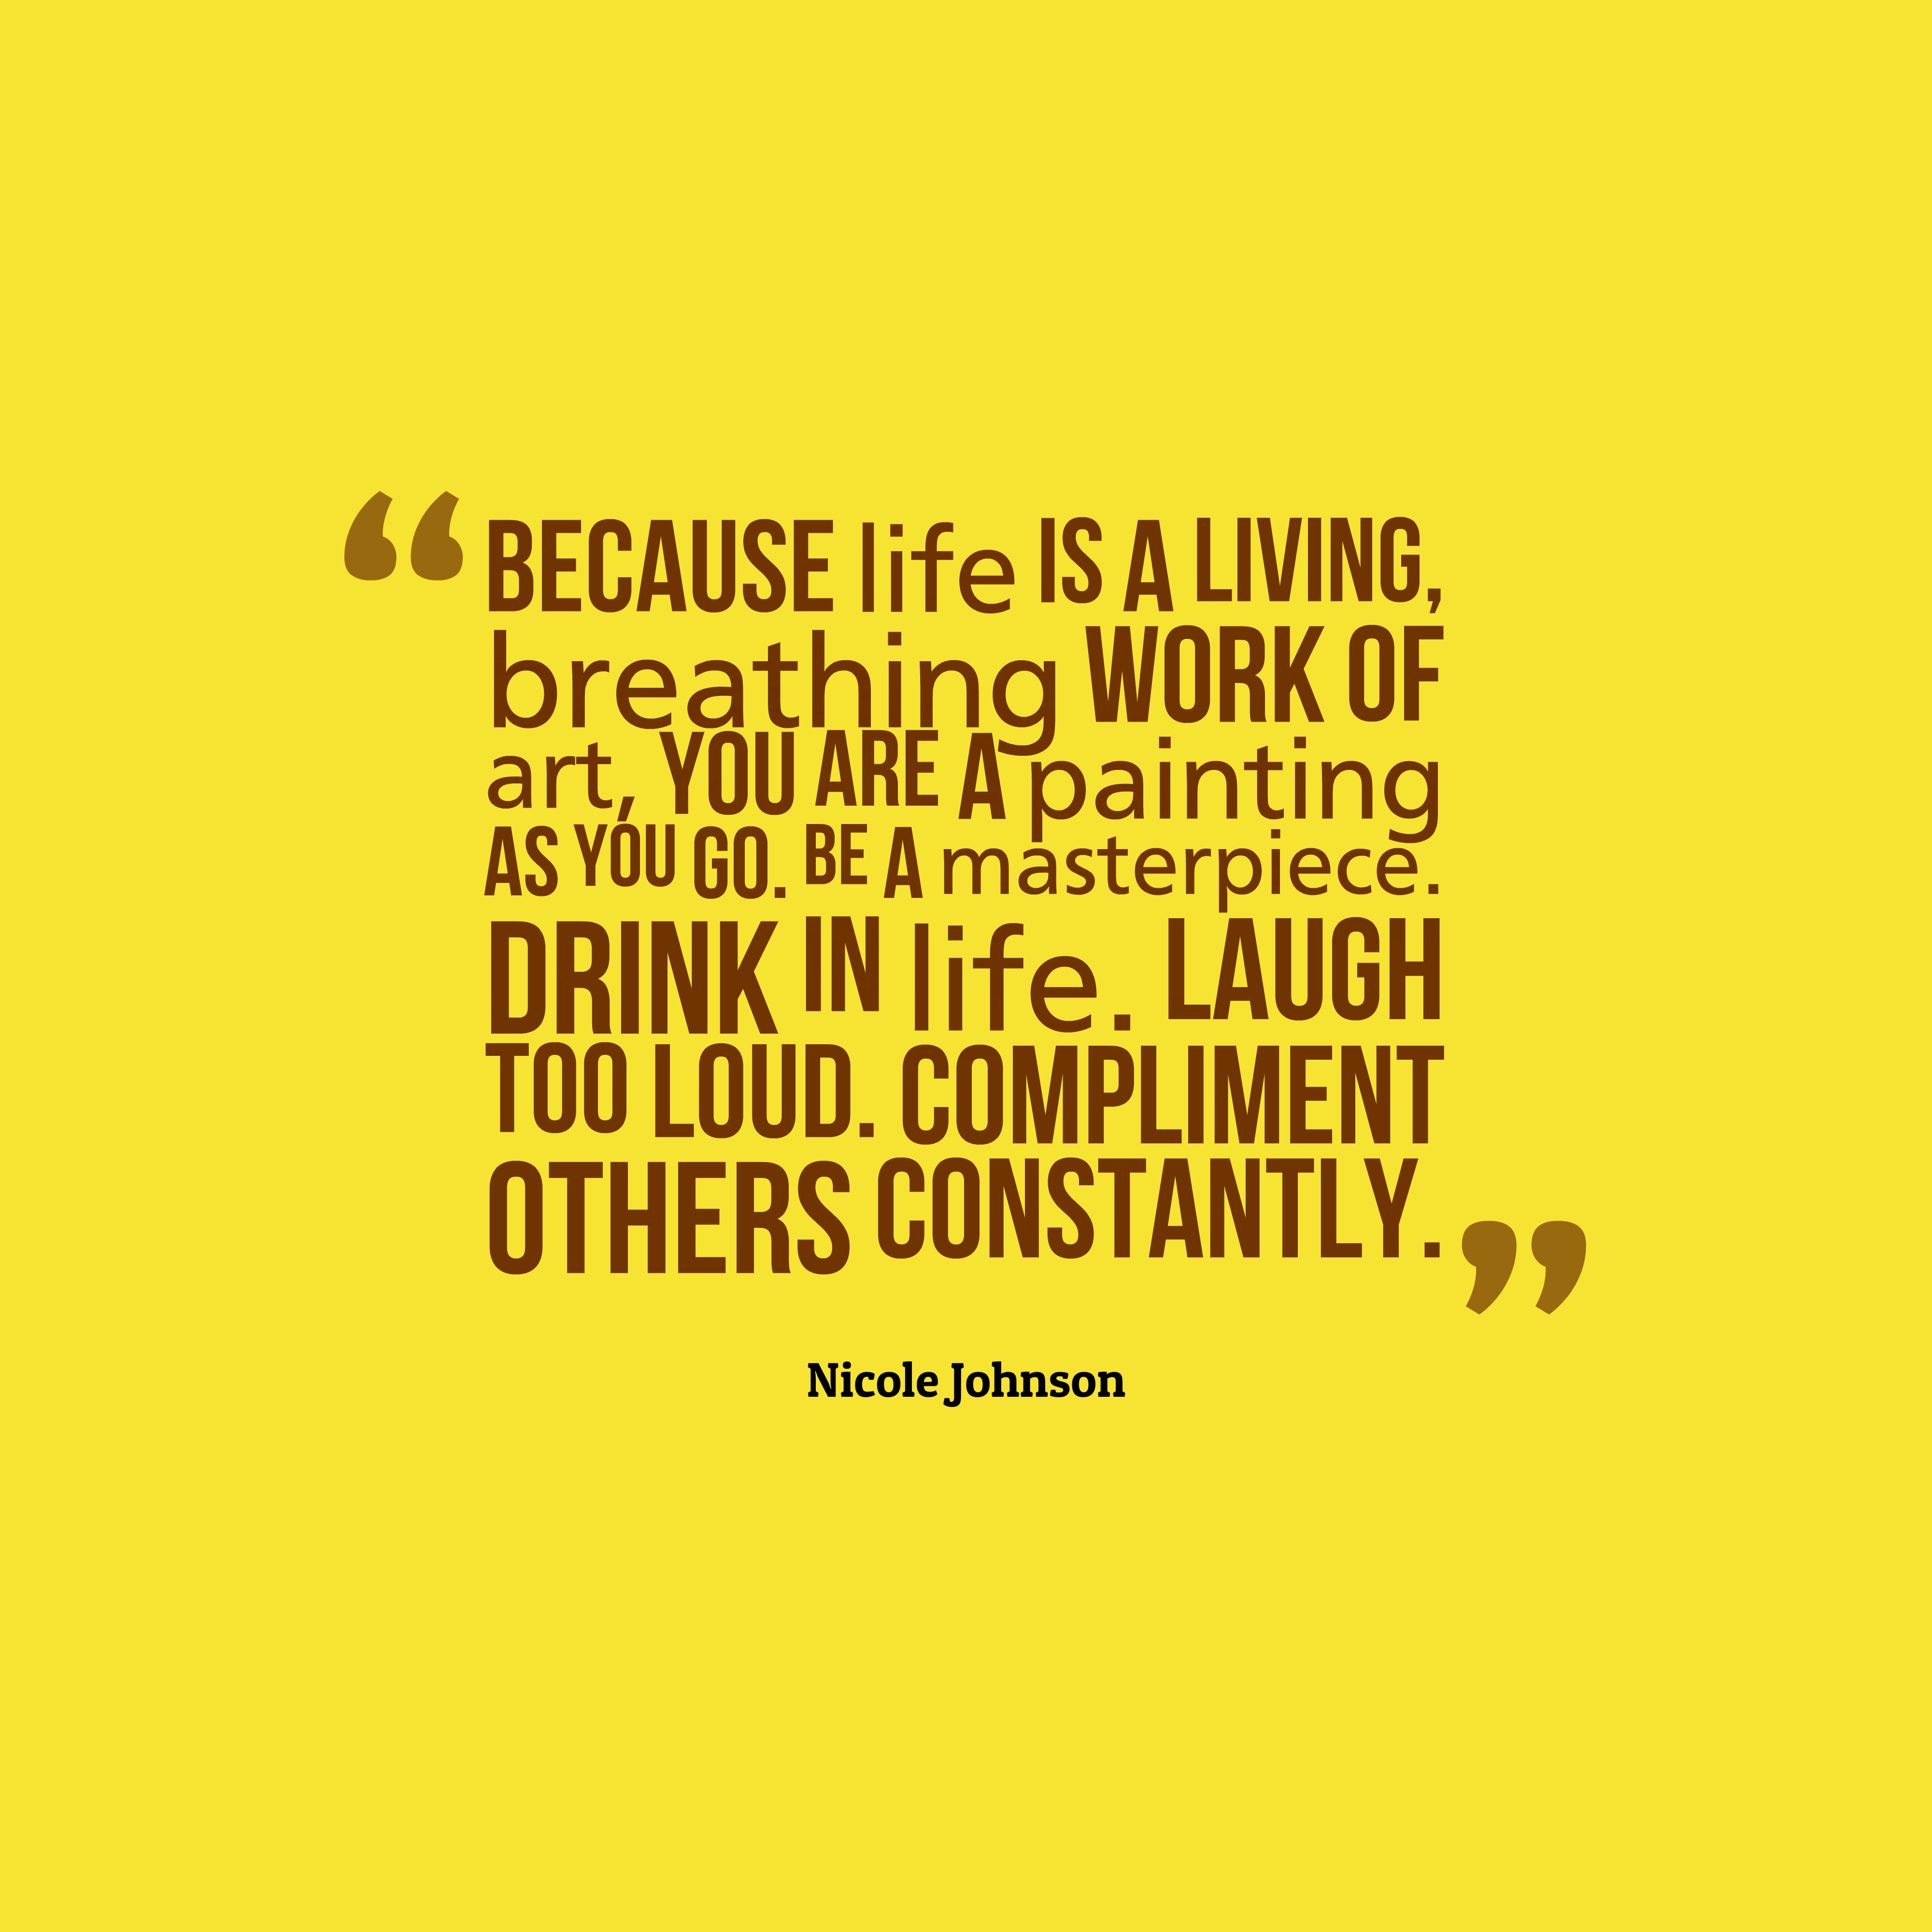 Quotes image of Because life is a living, breathing work of art, you are a painting as you go. Be a masterpiece. Drink in life. Laugh too loud. Compliment others constantly.